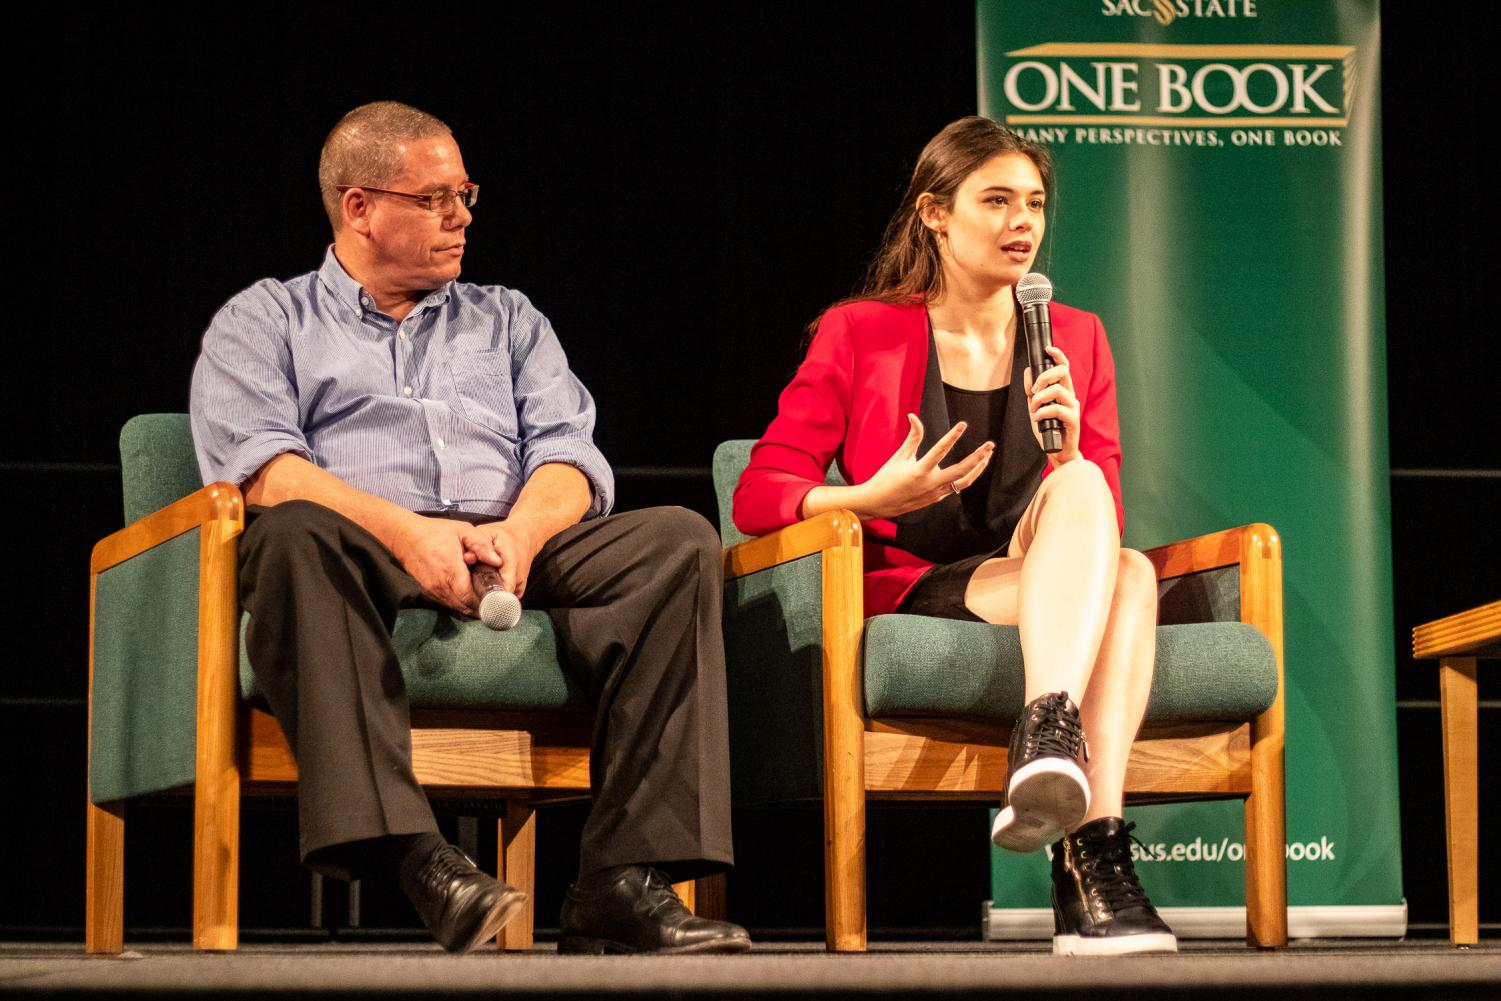 Wayne (Left) and Nicole Maines (right) speaking at the One Book Day event in the University Union Ballroom on Thursday night at Sac State. The book